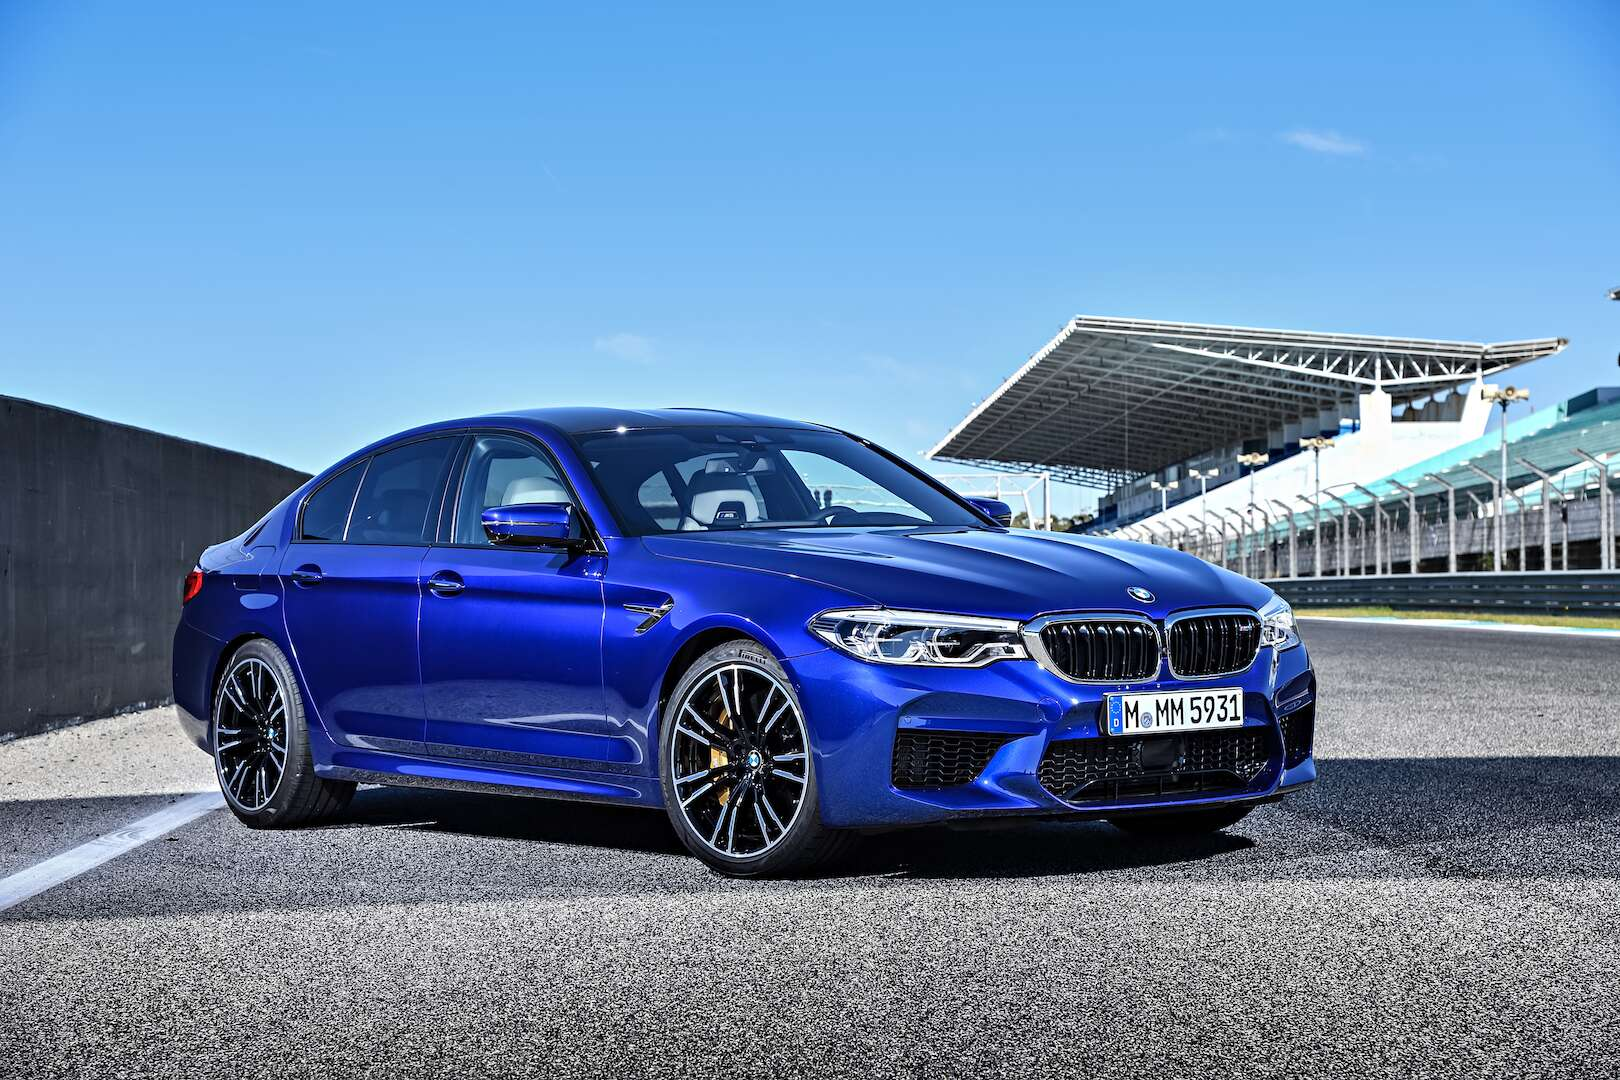 2018 bmw m5 test drive review in portugal welcome to the 600 hp club the drive. Black Bedroom Furniture Sets. Home Design Ideas